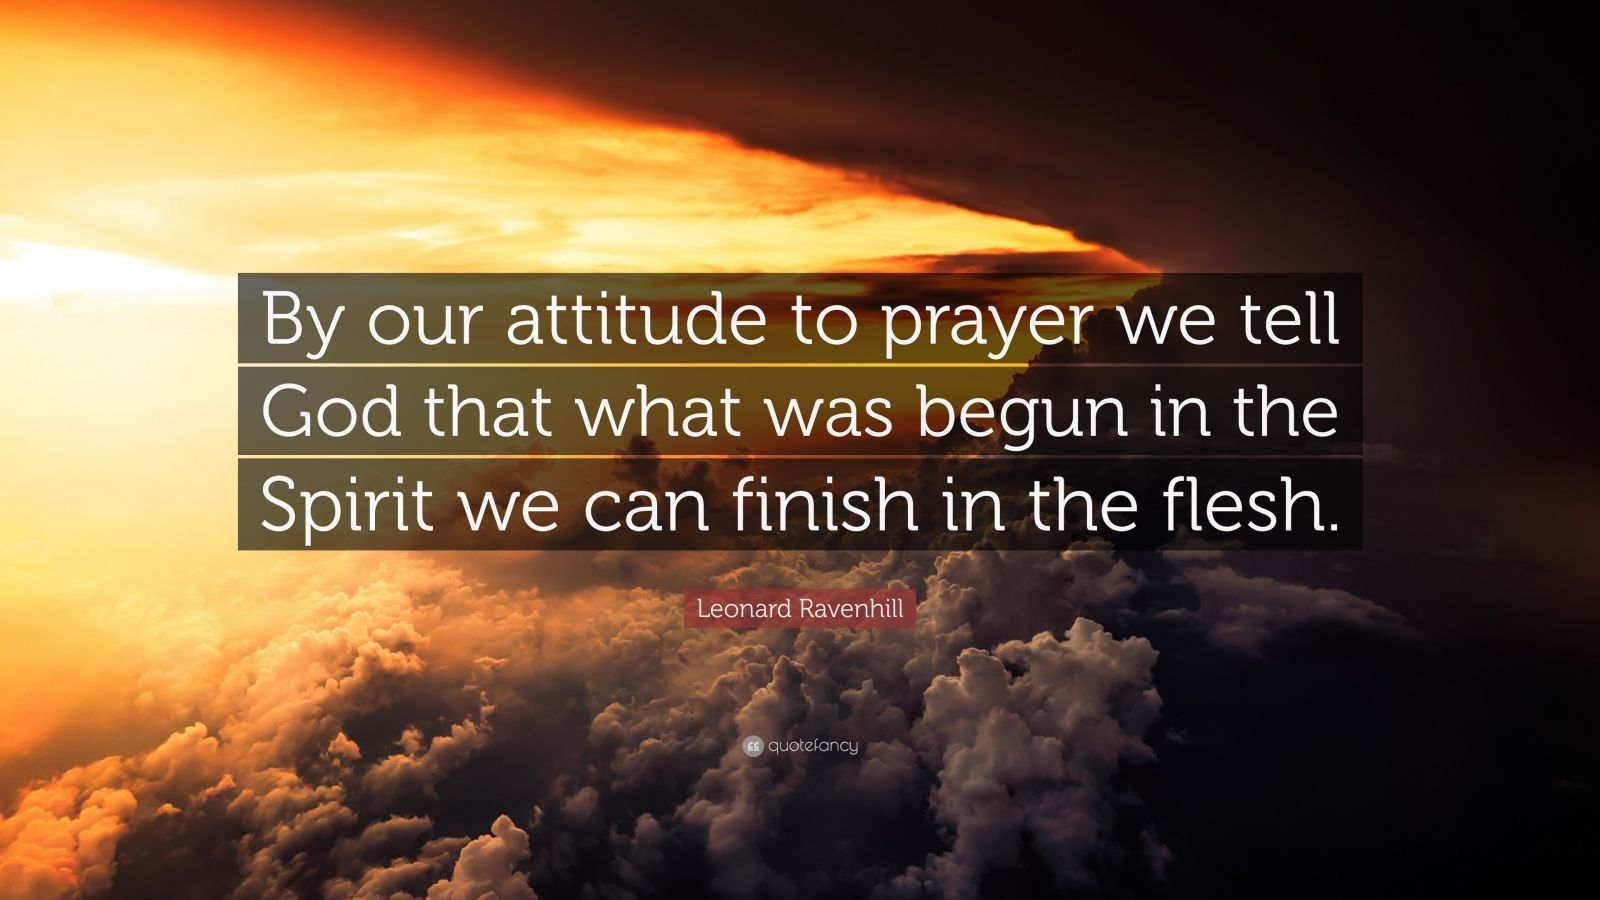 """Leonard Ravenhill Quote: """"By our attitude to prayer we tell God that what was begun in the Spirit we can finish in the flesh."""""""